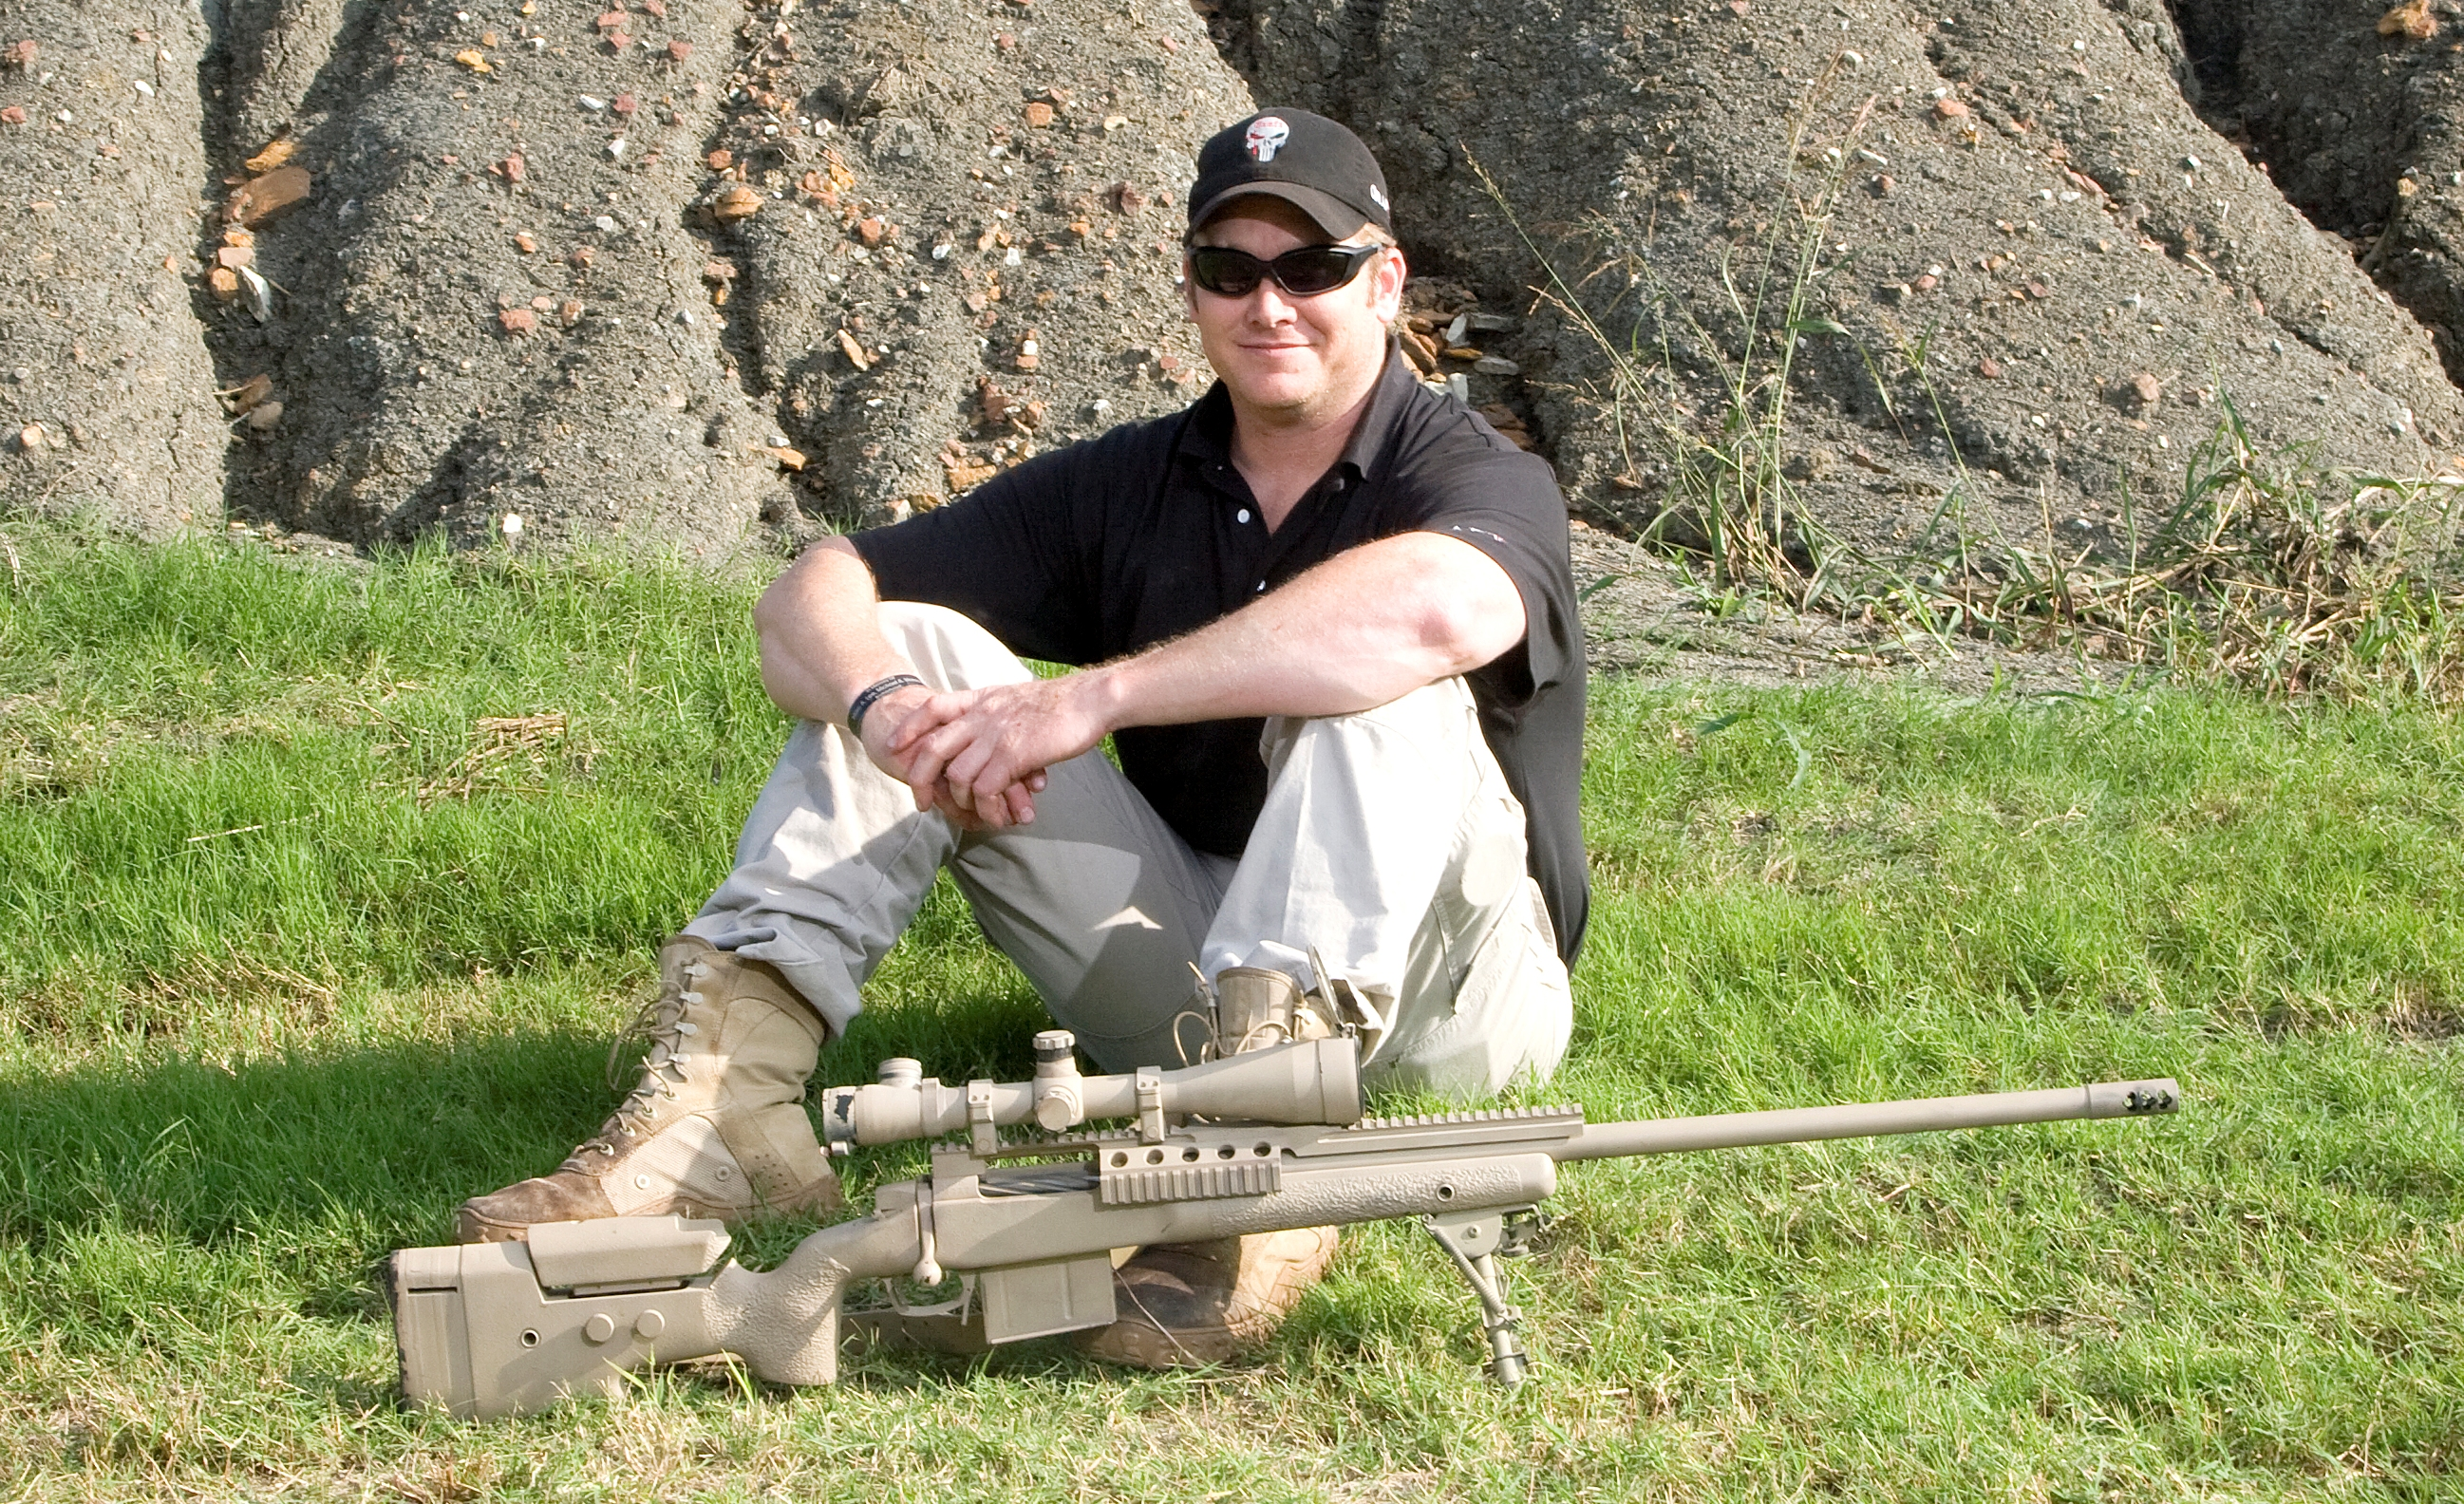 Chris Kyle (Photo courtesy of Harper Collins)